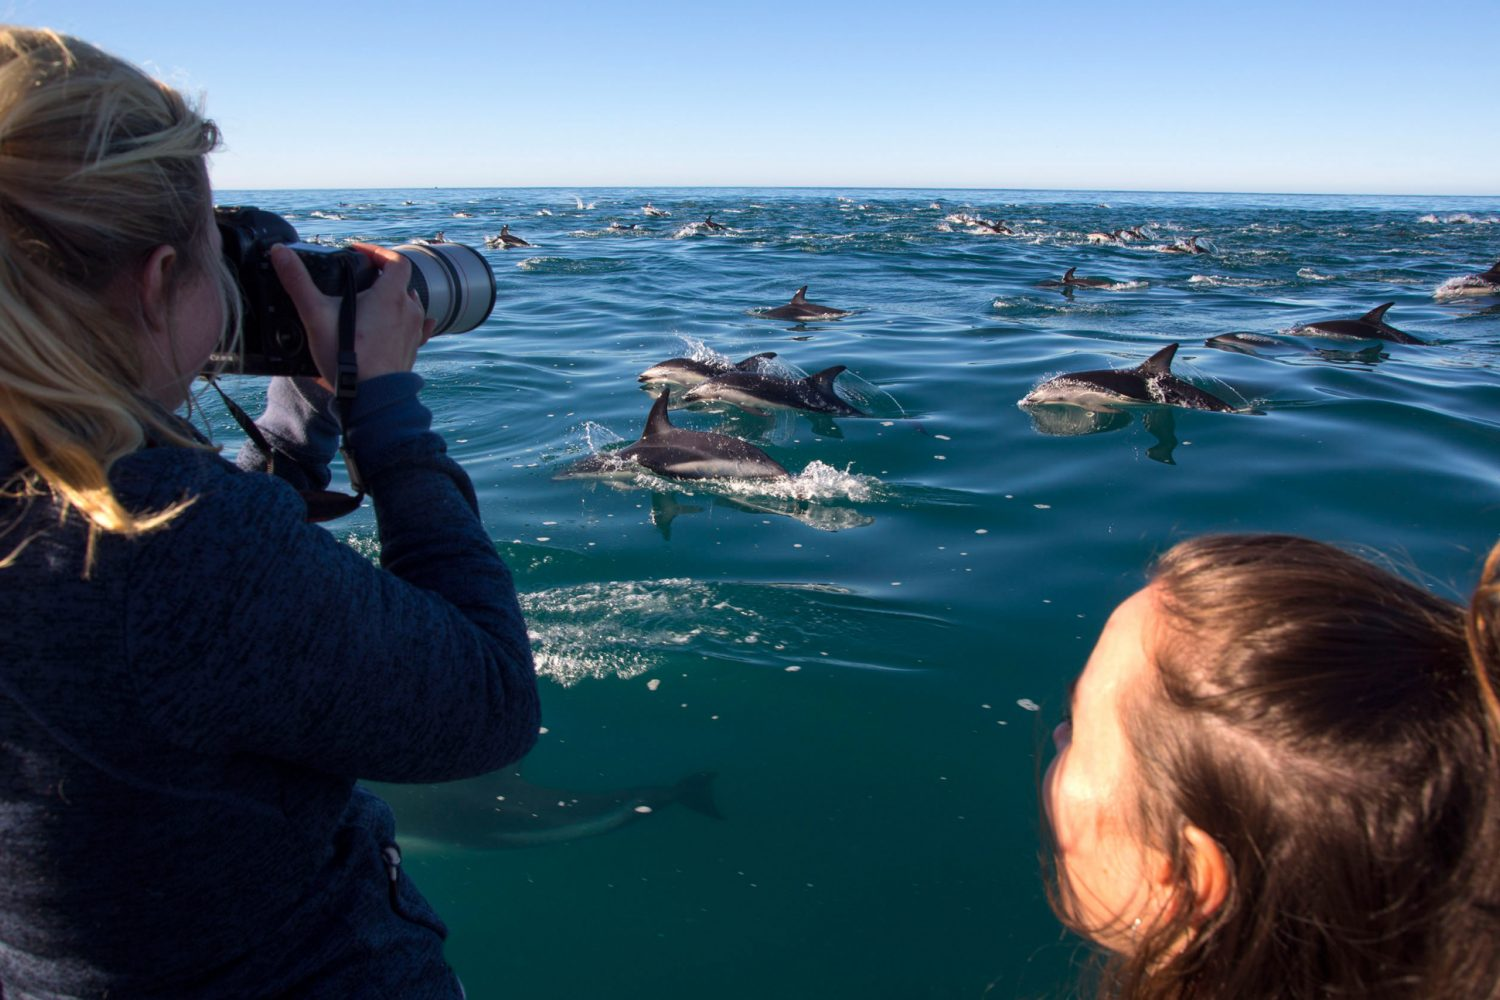 Dolphin Encounter in Kaikoura